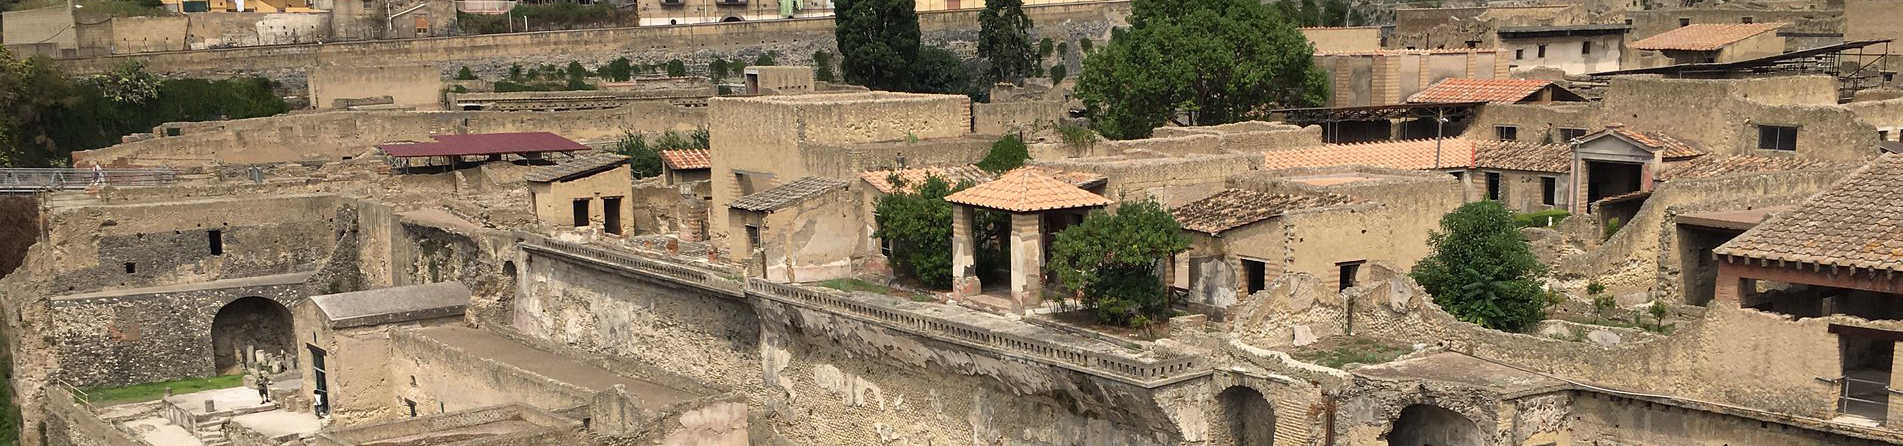 Is Herculaneum better than Pompeii?